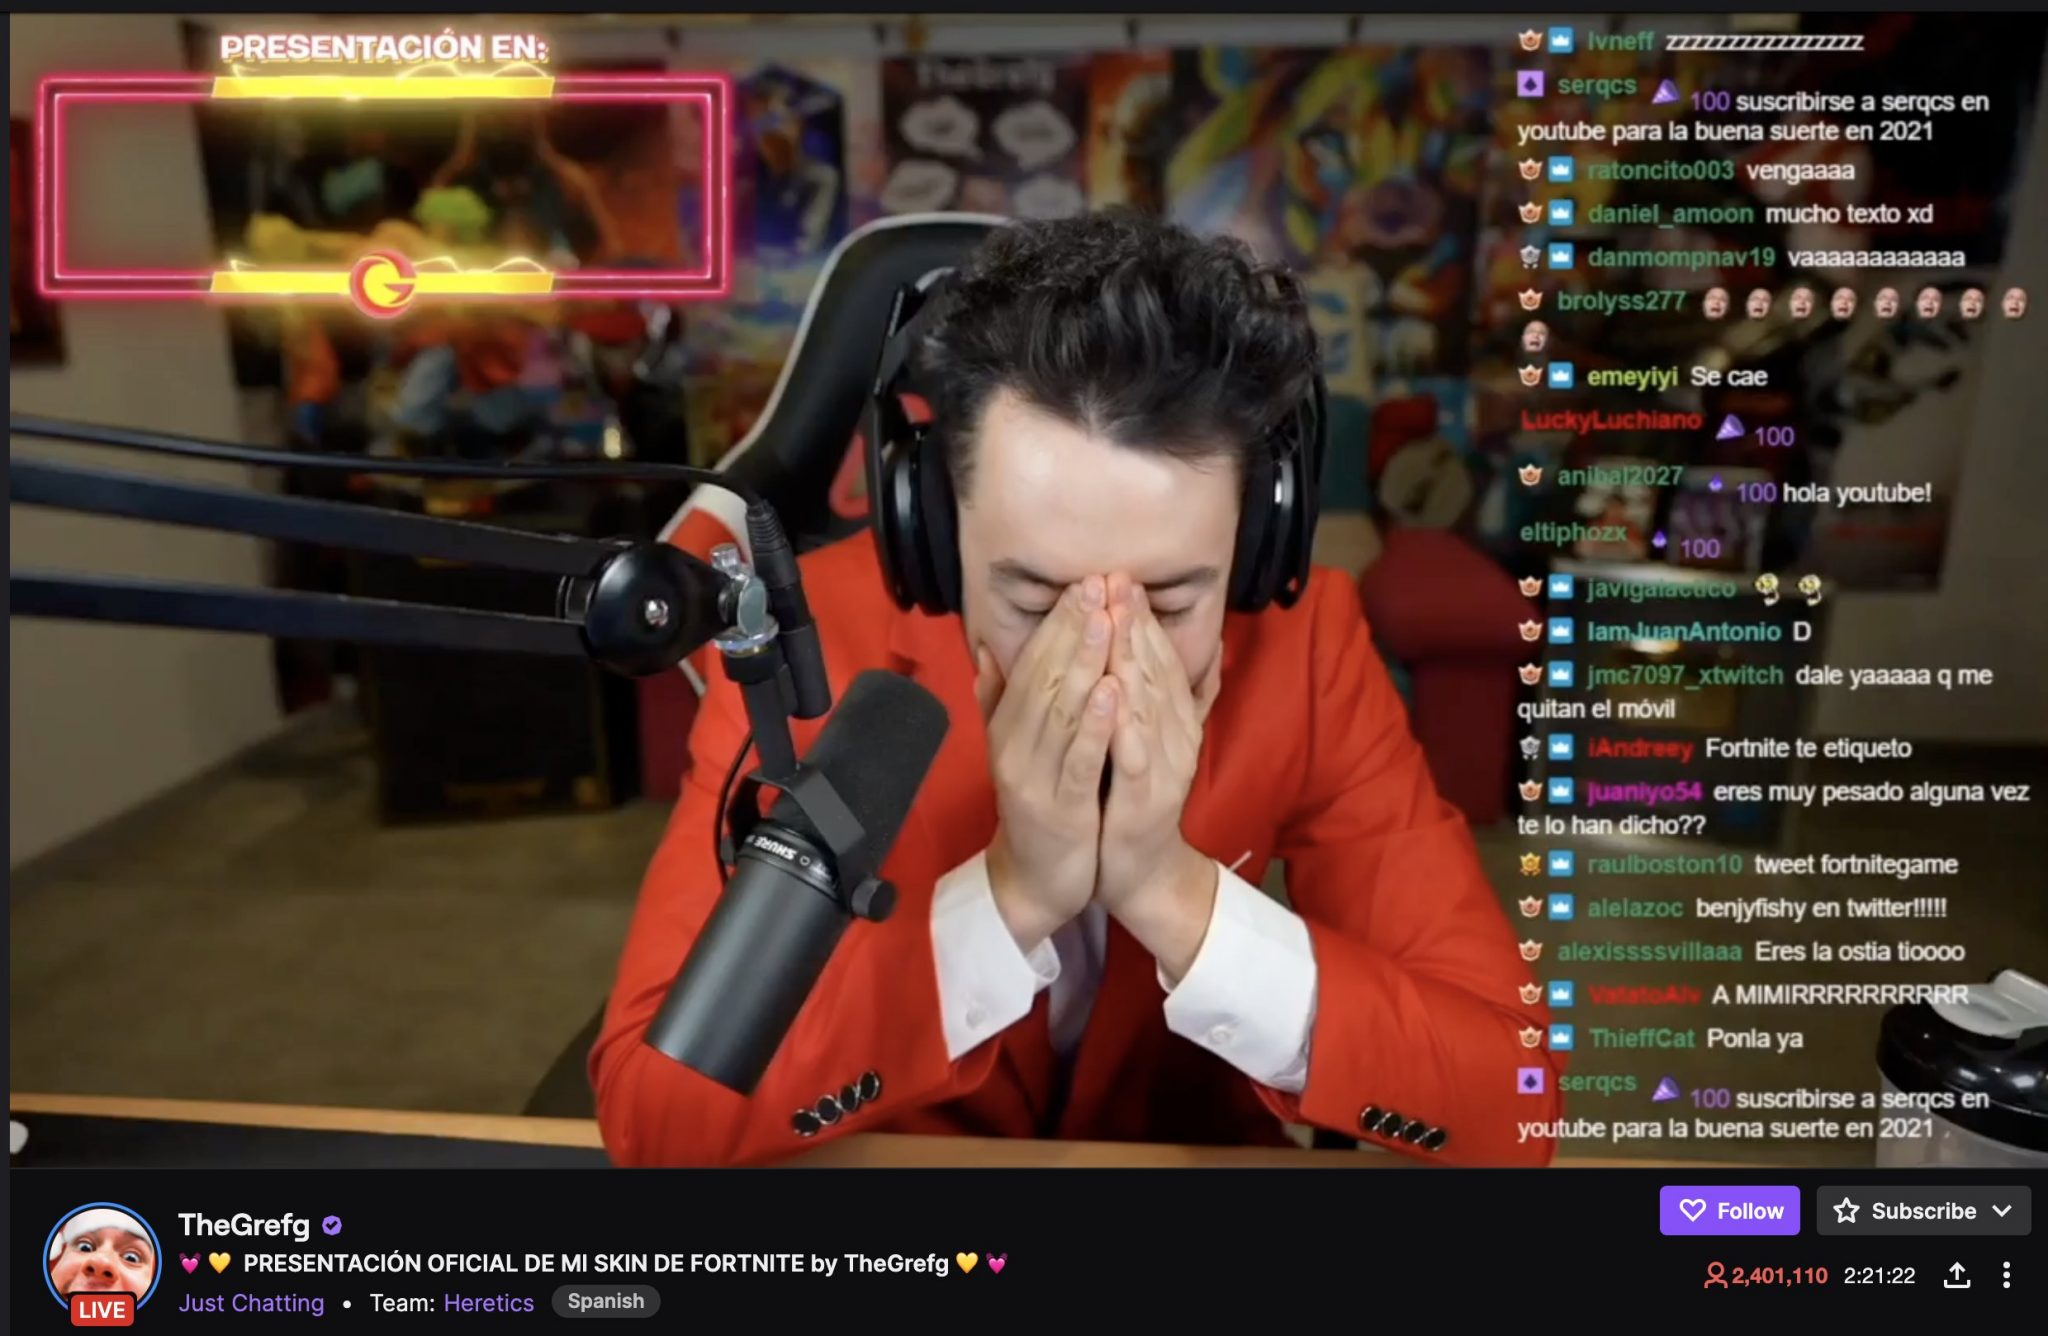 Twitch streamer TheGrefg sets new record of 2.4 million concurrent viewers - Digital TV Europe